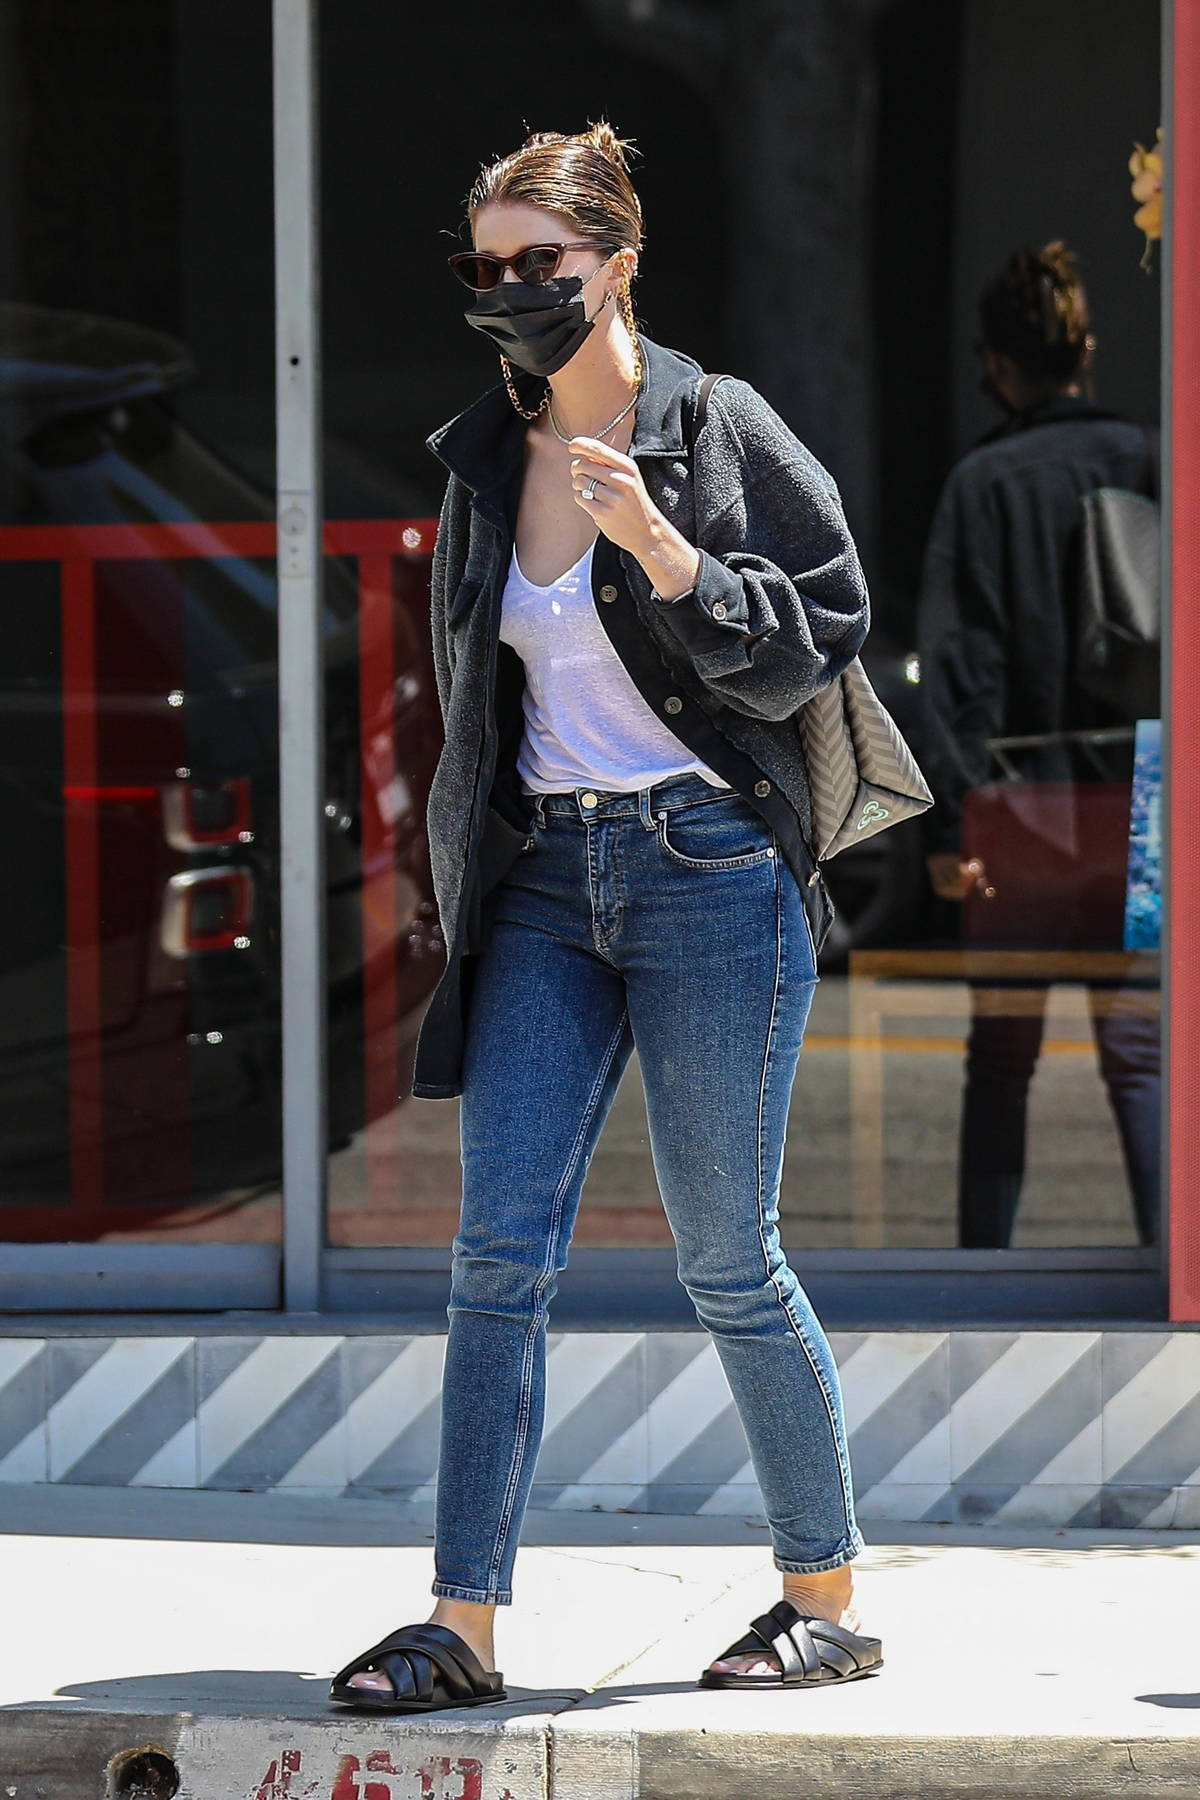 Katherine Schwarzenegger leaves the salon with her hair wet after a pampering session in West Hollywood, California